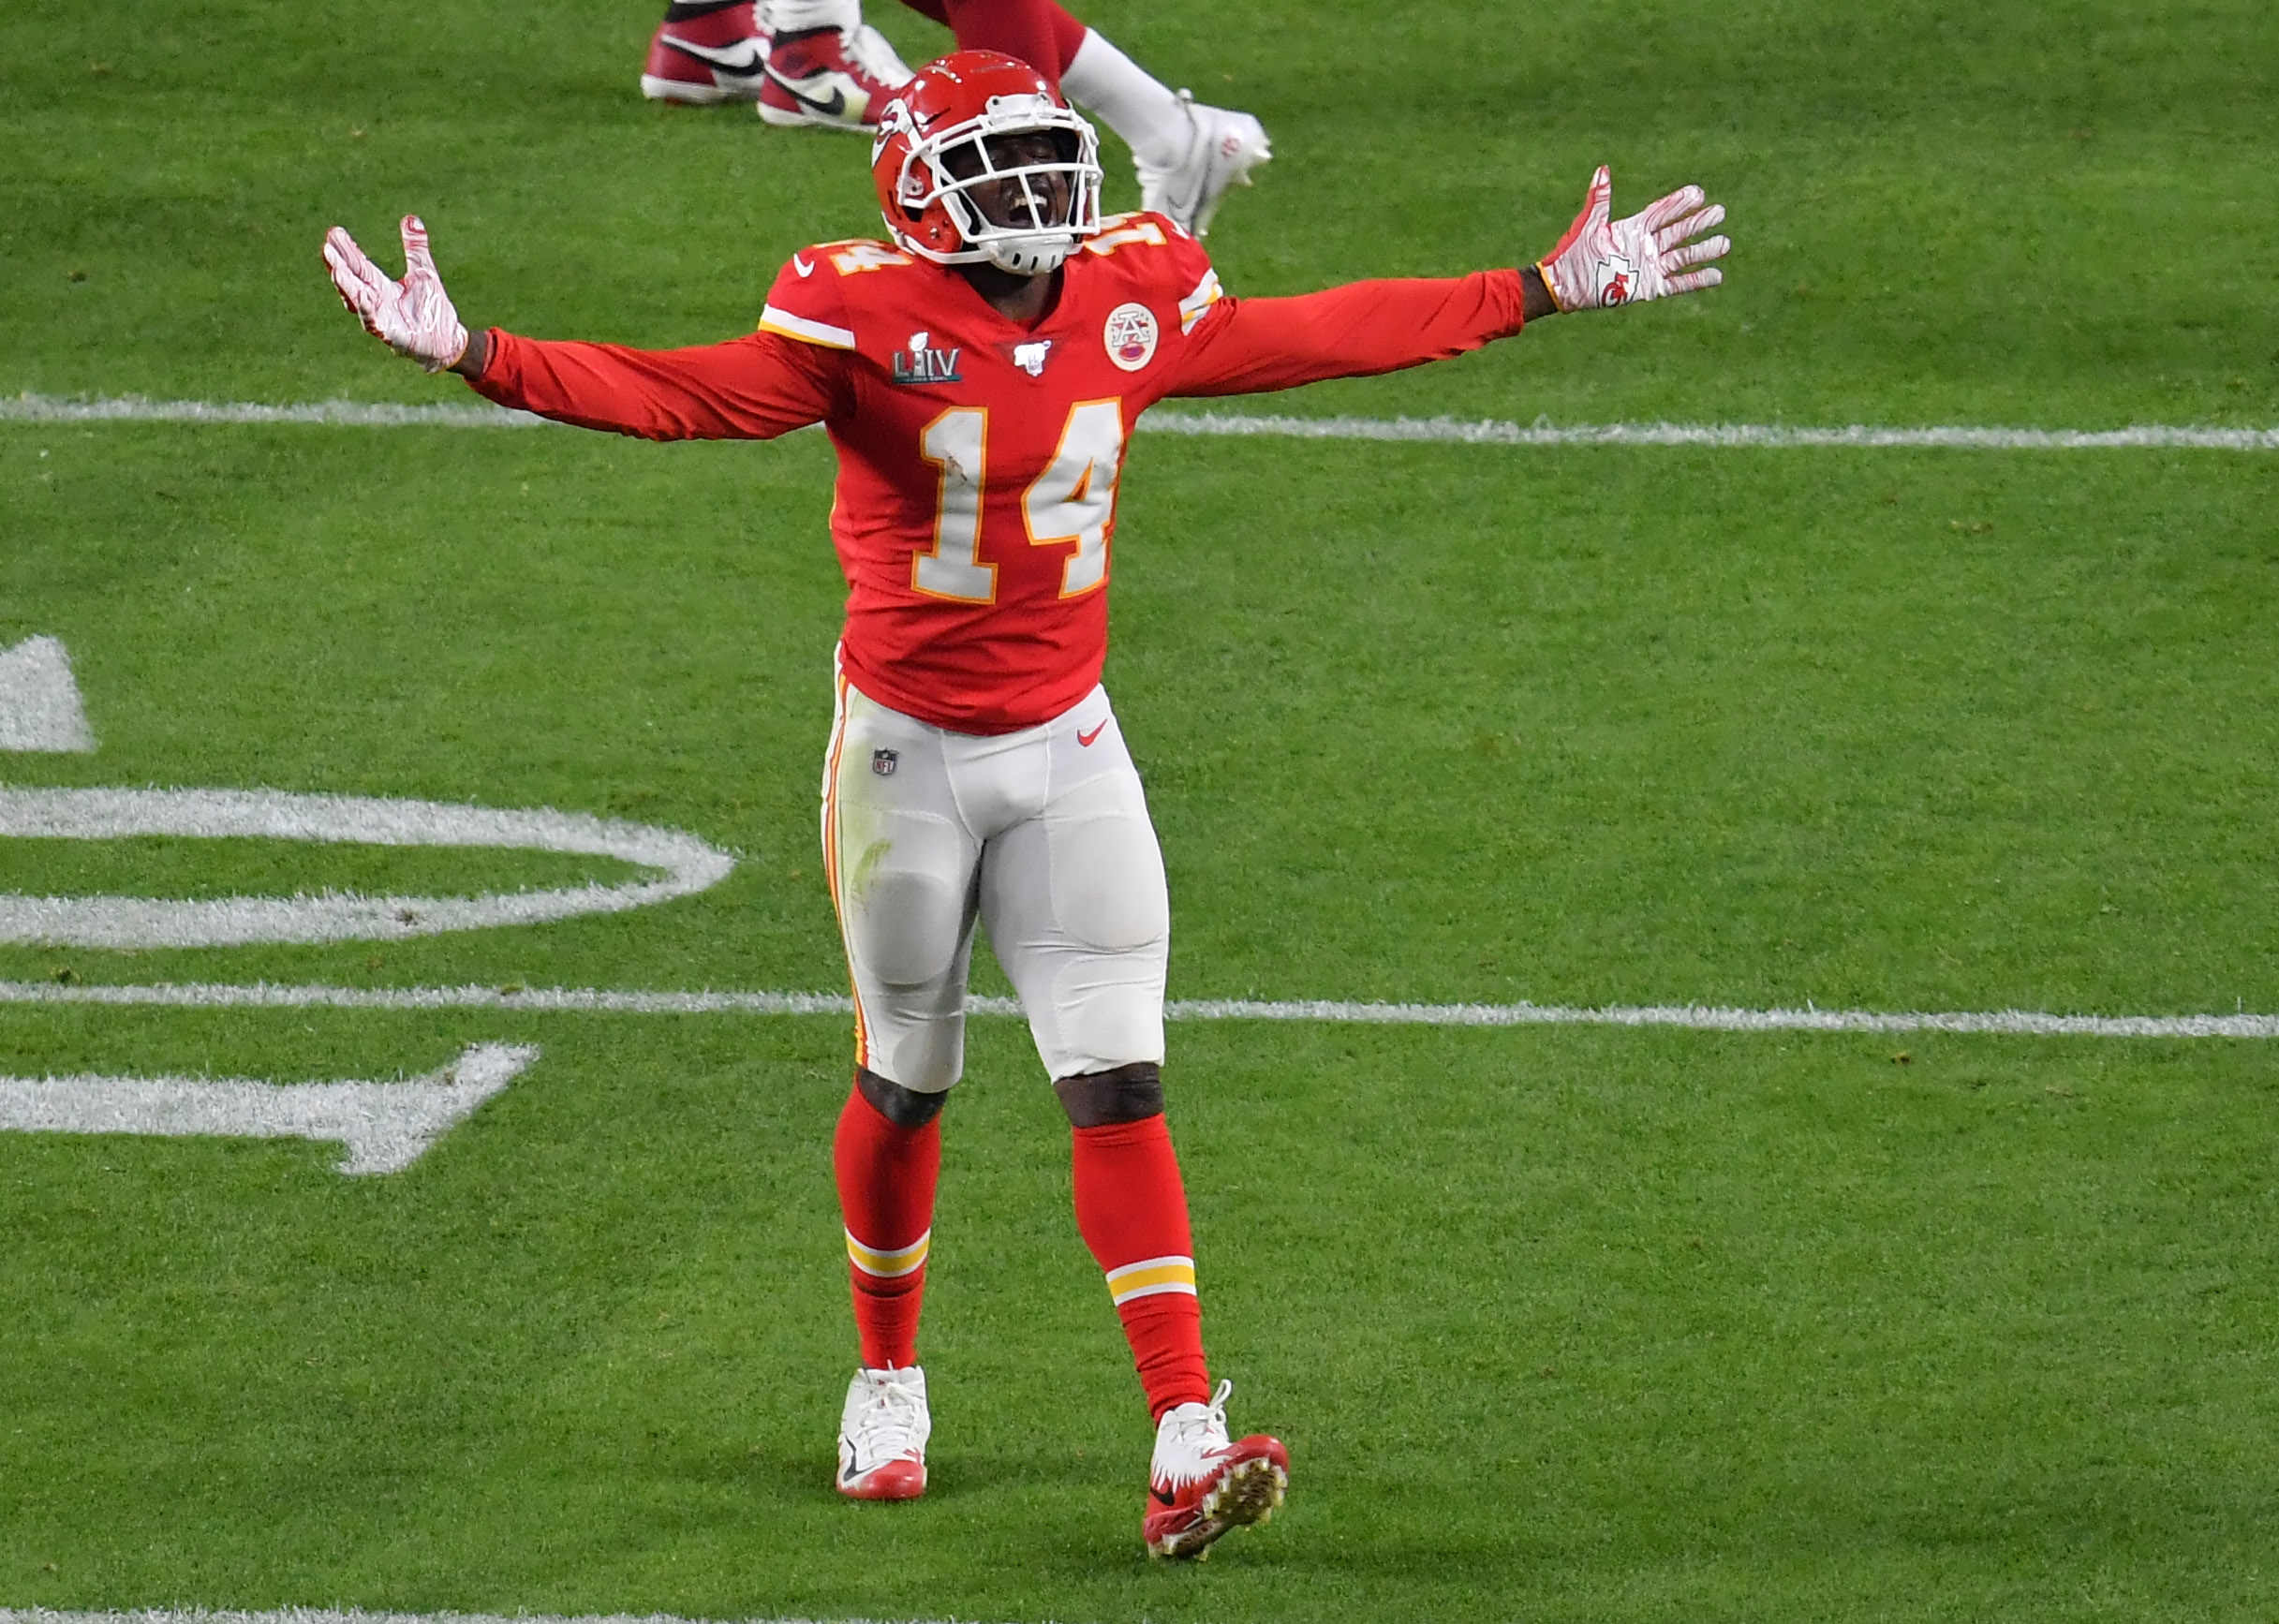 Sammy Watkins explains why he took pay cut to remain with Chiefs